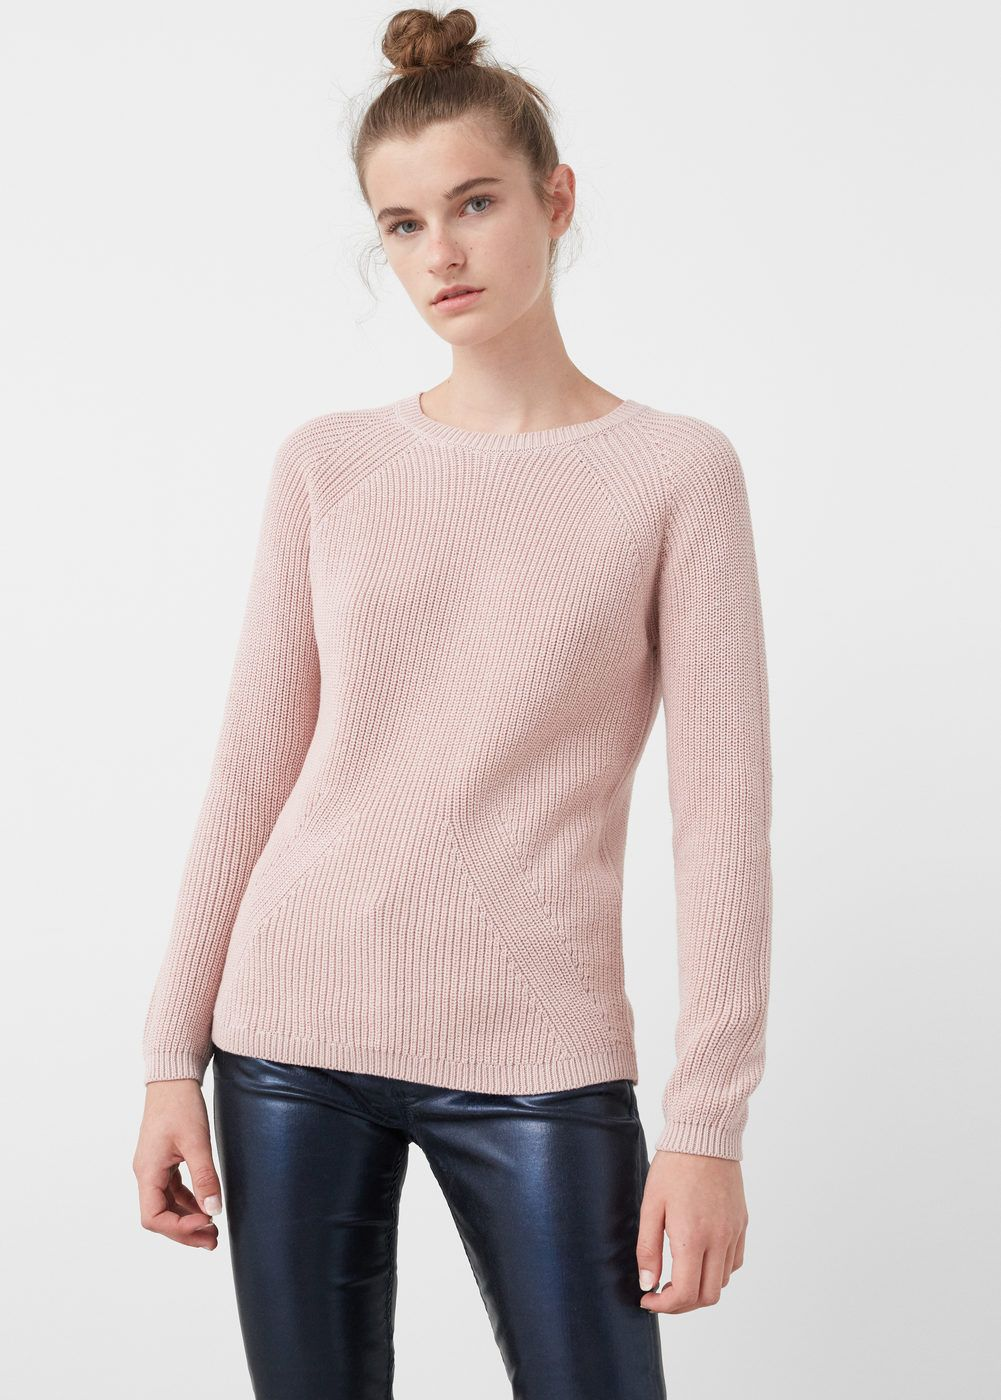 Ribbed cotton,blend sweater , Cardigans and sweaters for Woman